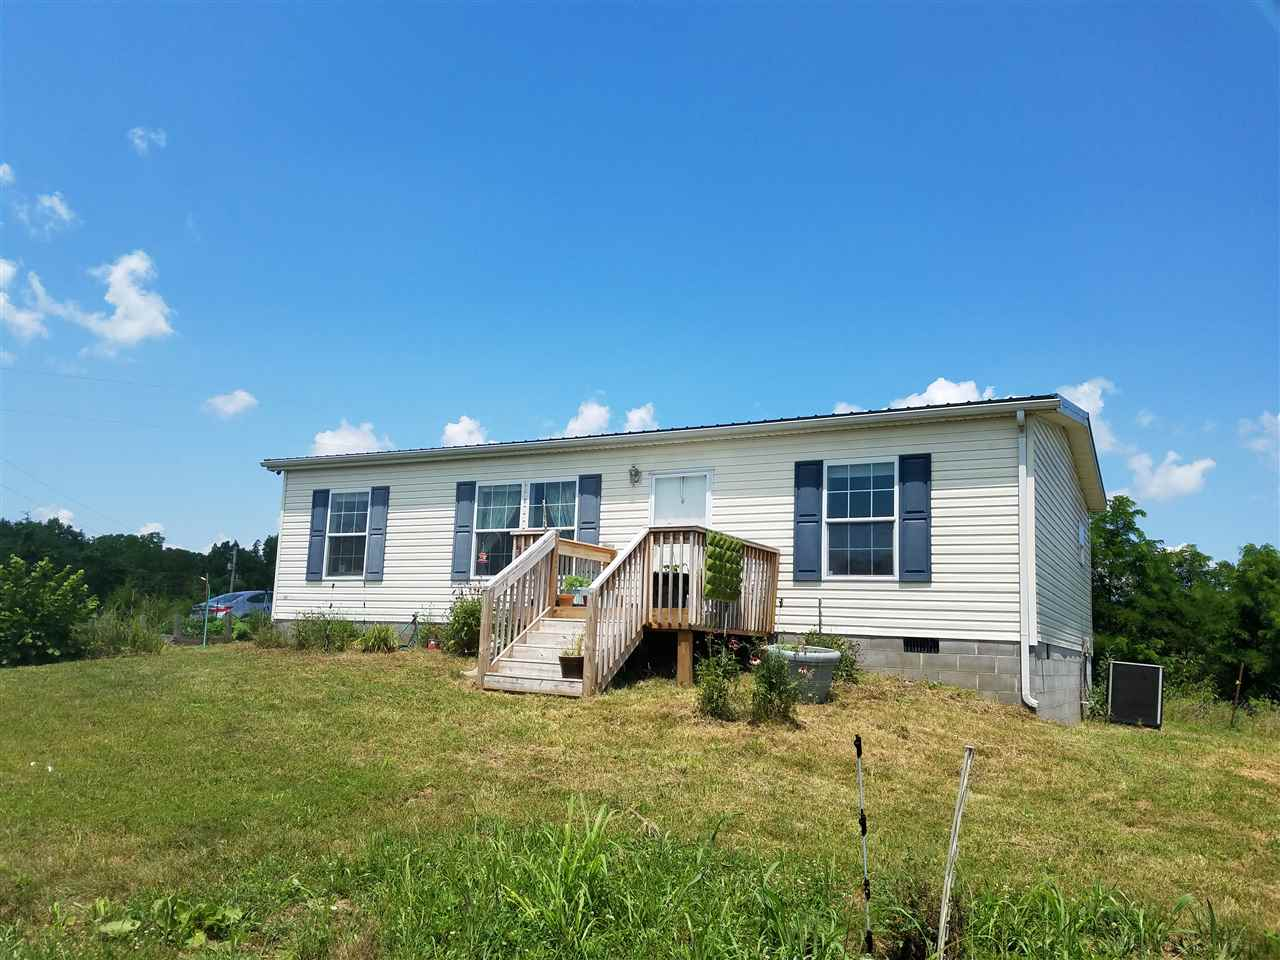 Photo 1 for 810 Martin Rd Corinth, KY 41010